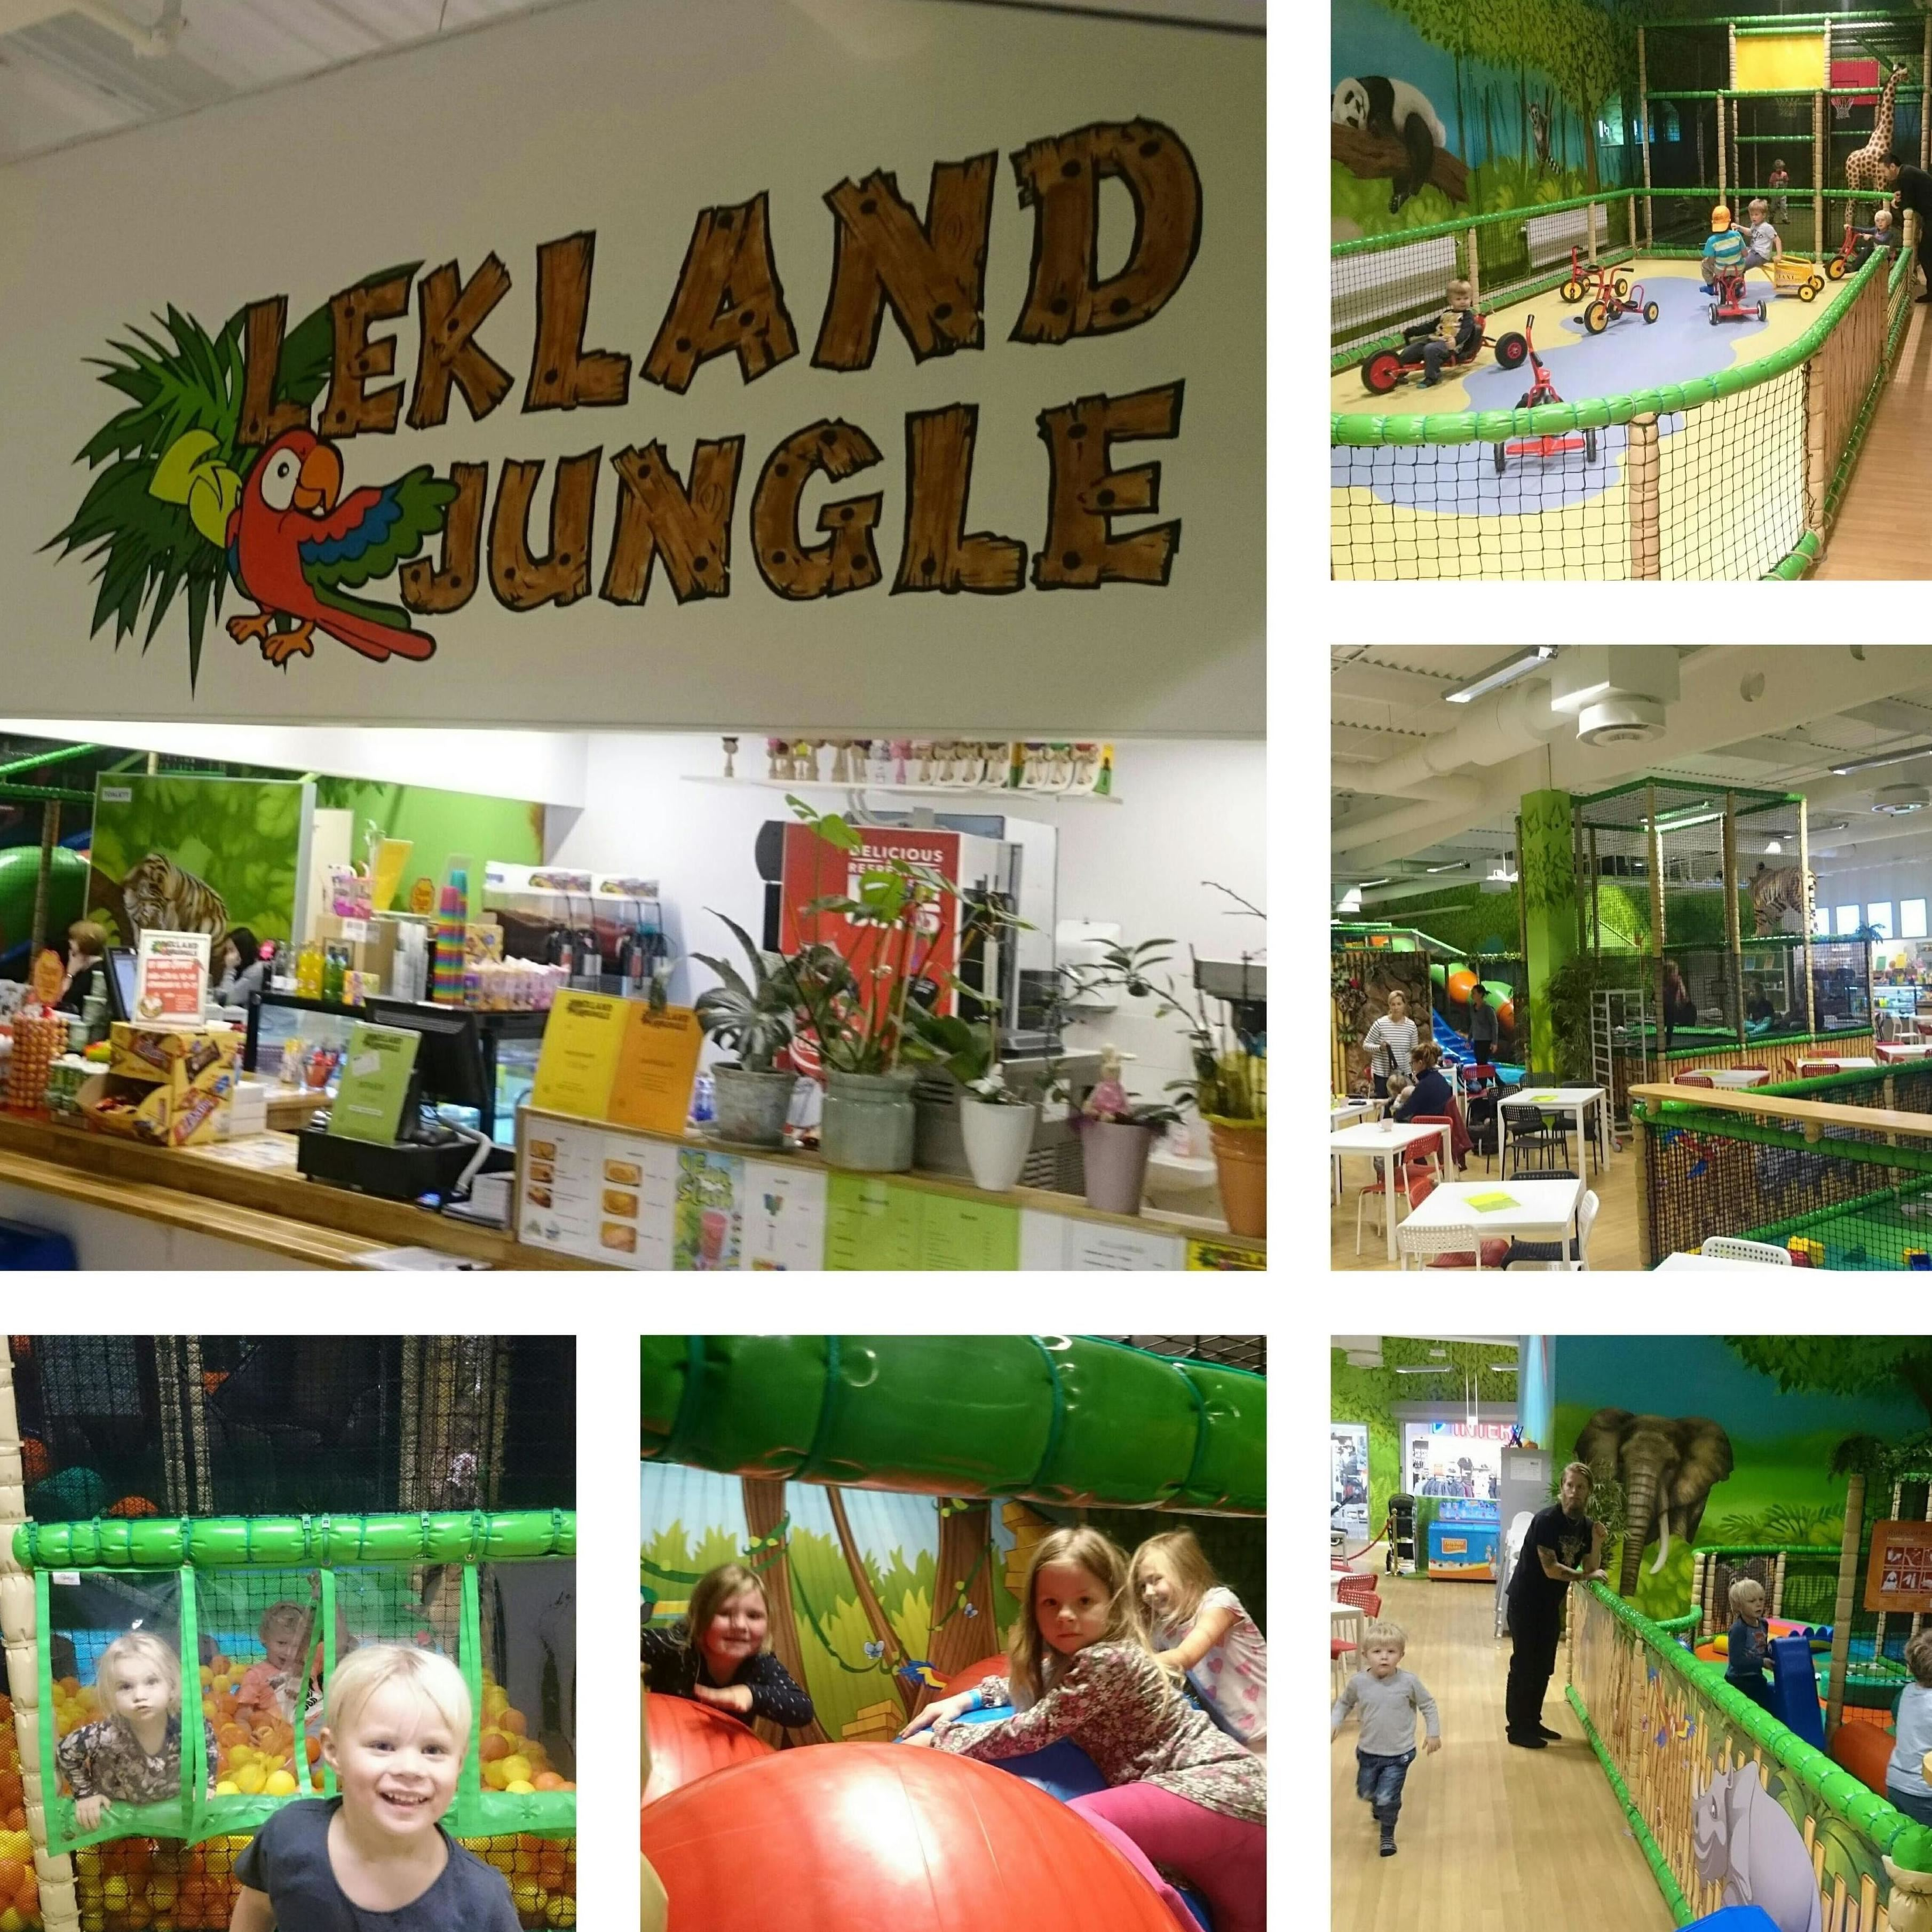 Luis Reyes Conill, Lekland Jungle